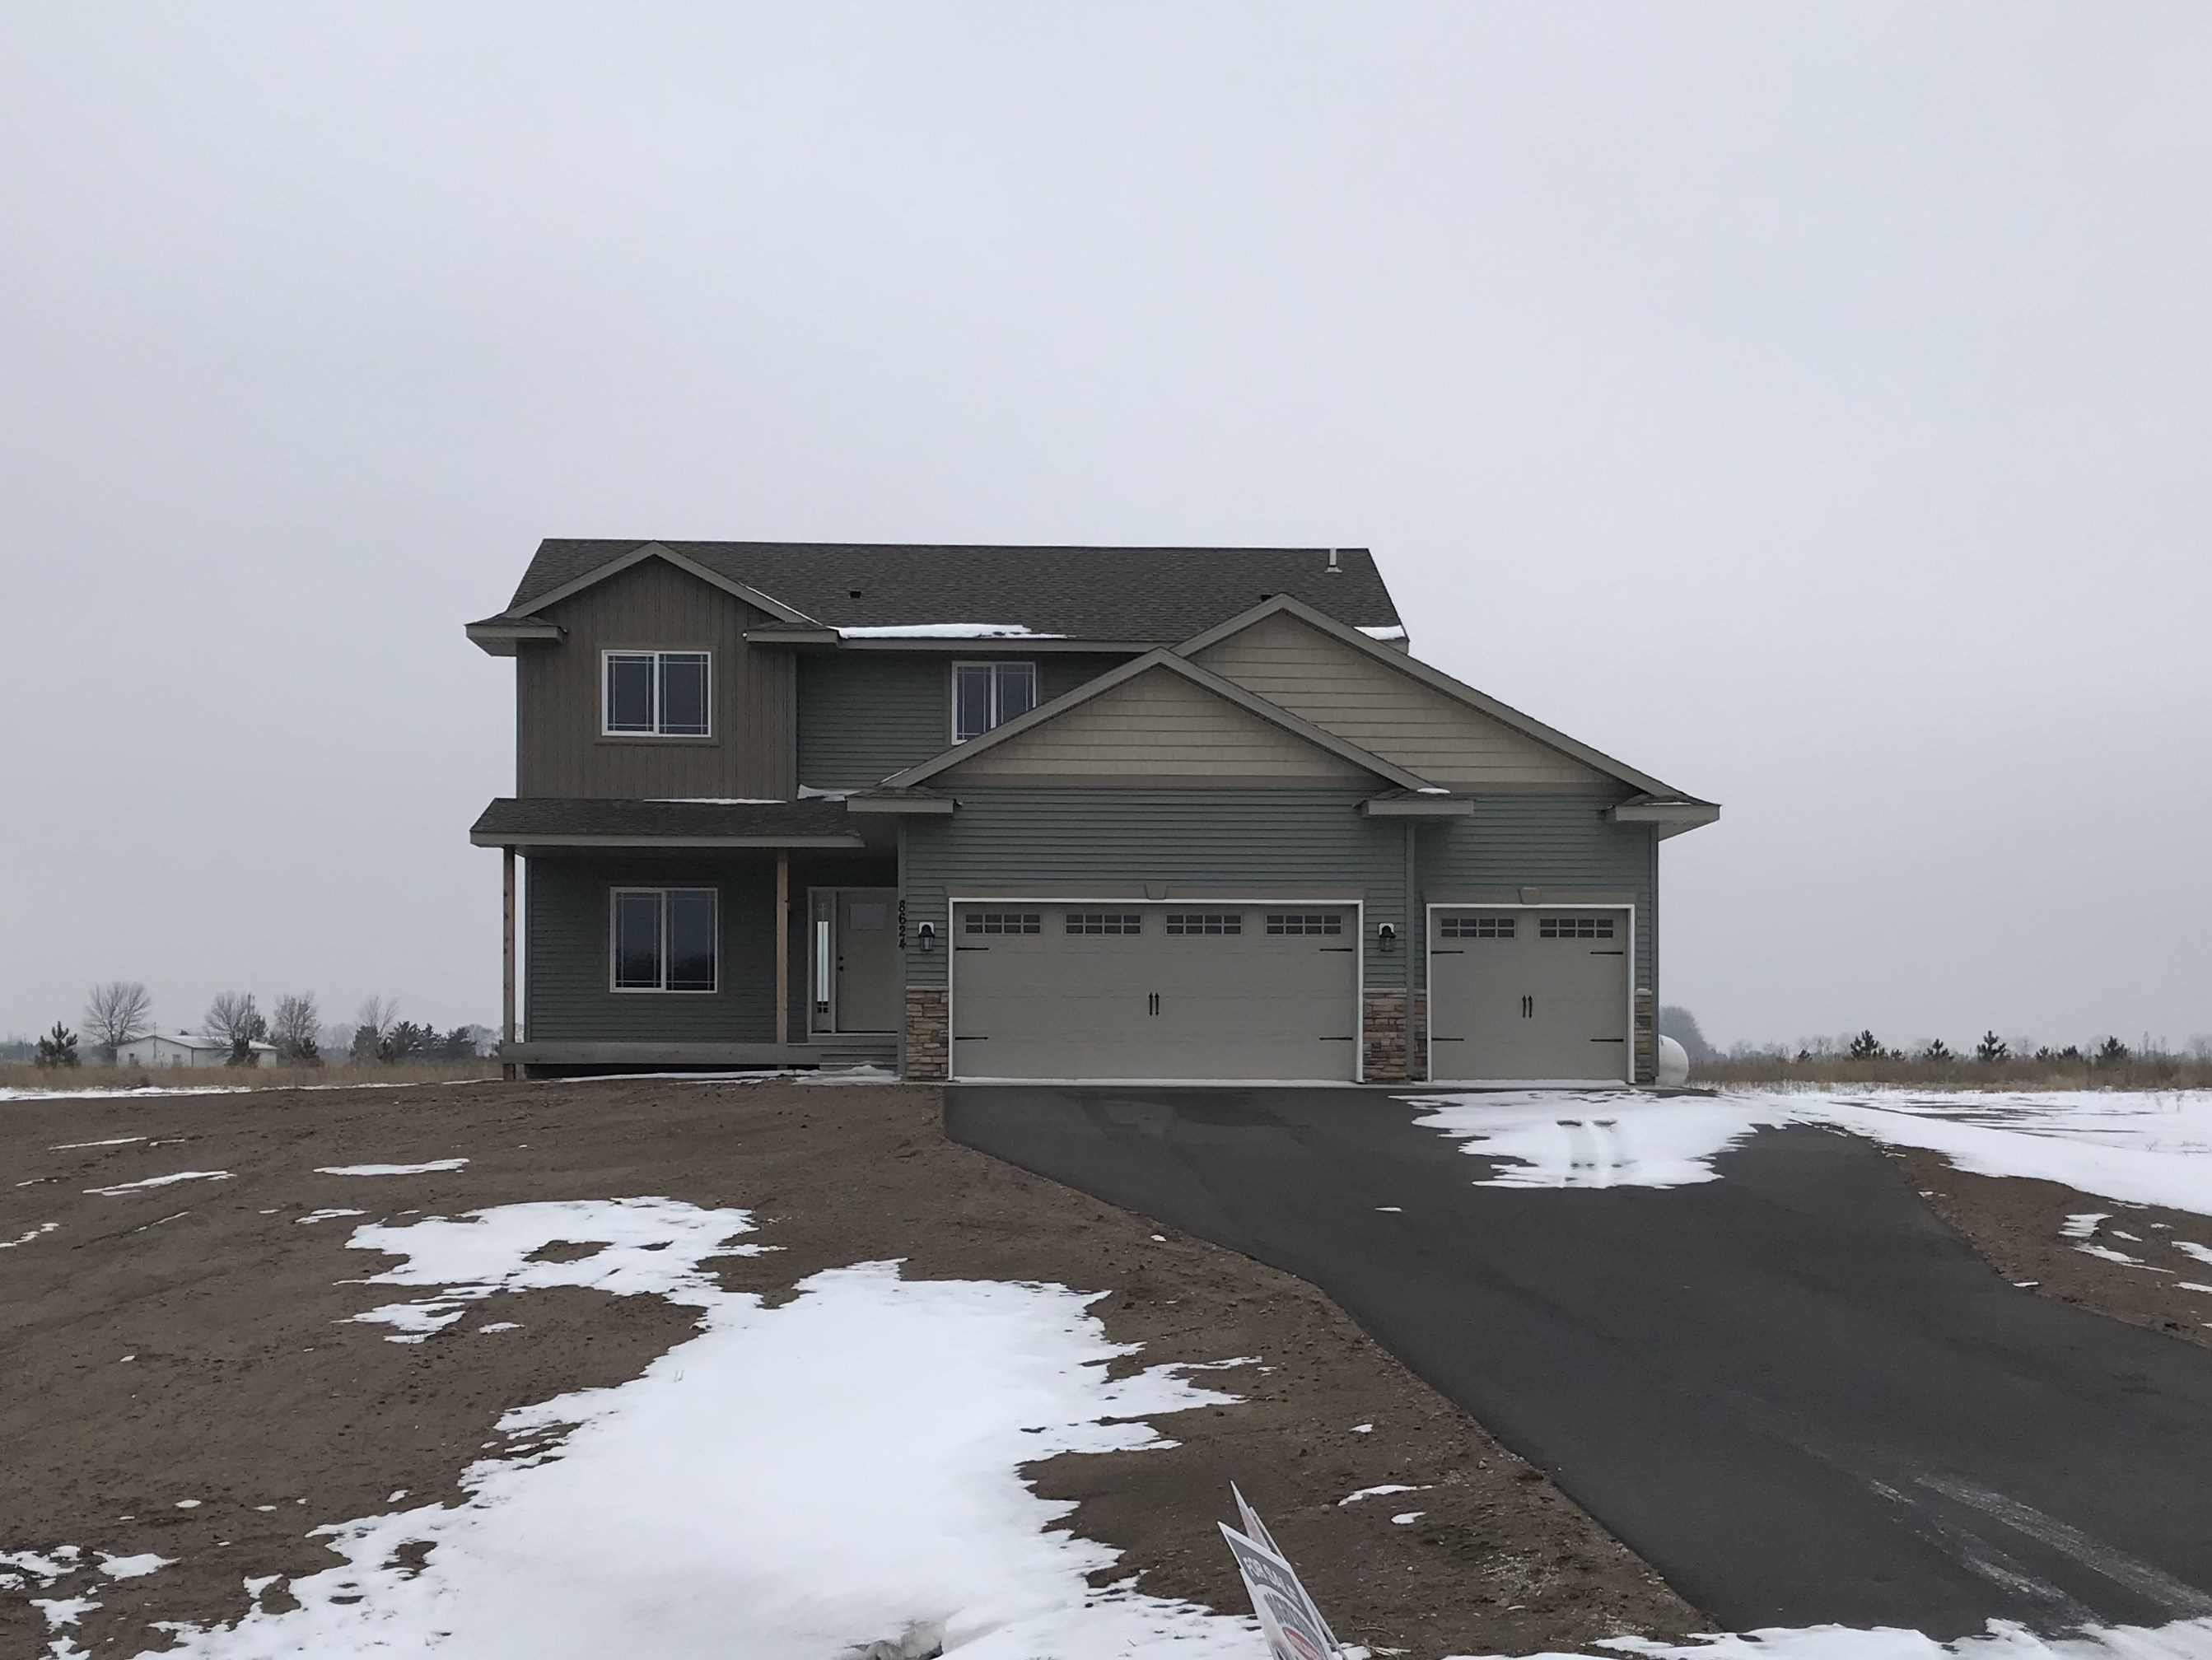 This is a move-in ready home in Clear Lake, MN located on 119th Ave. SE.